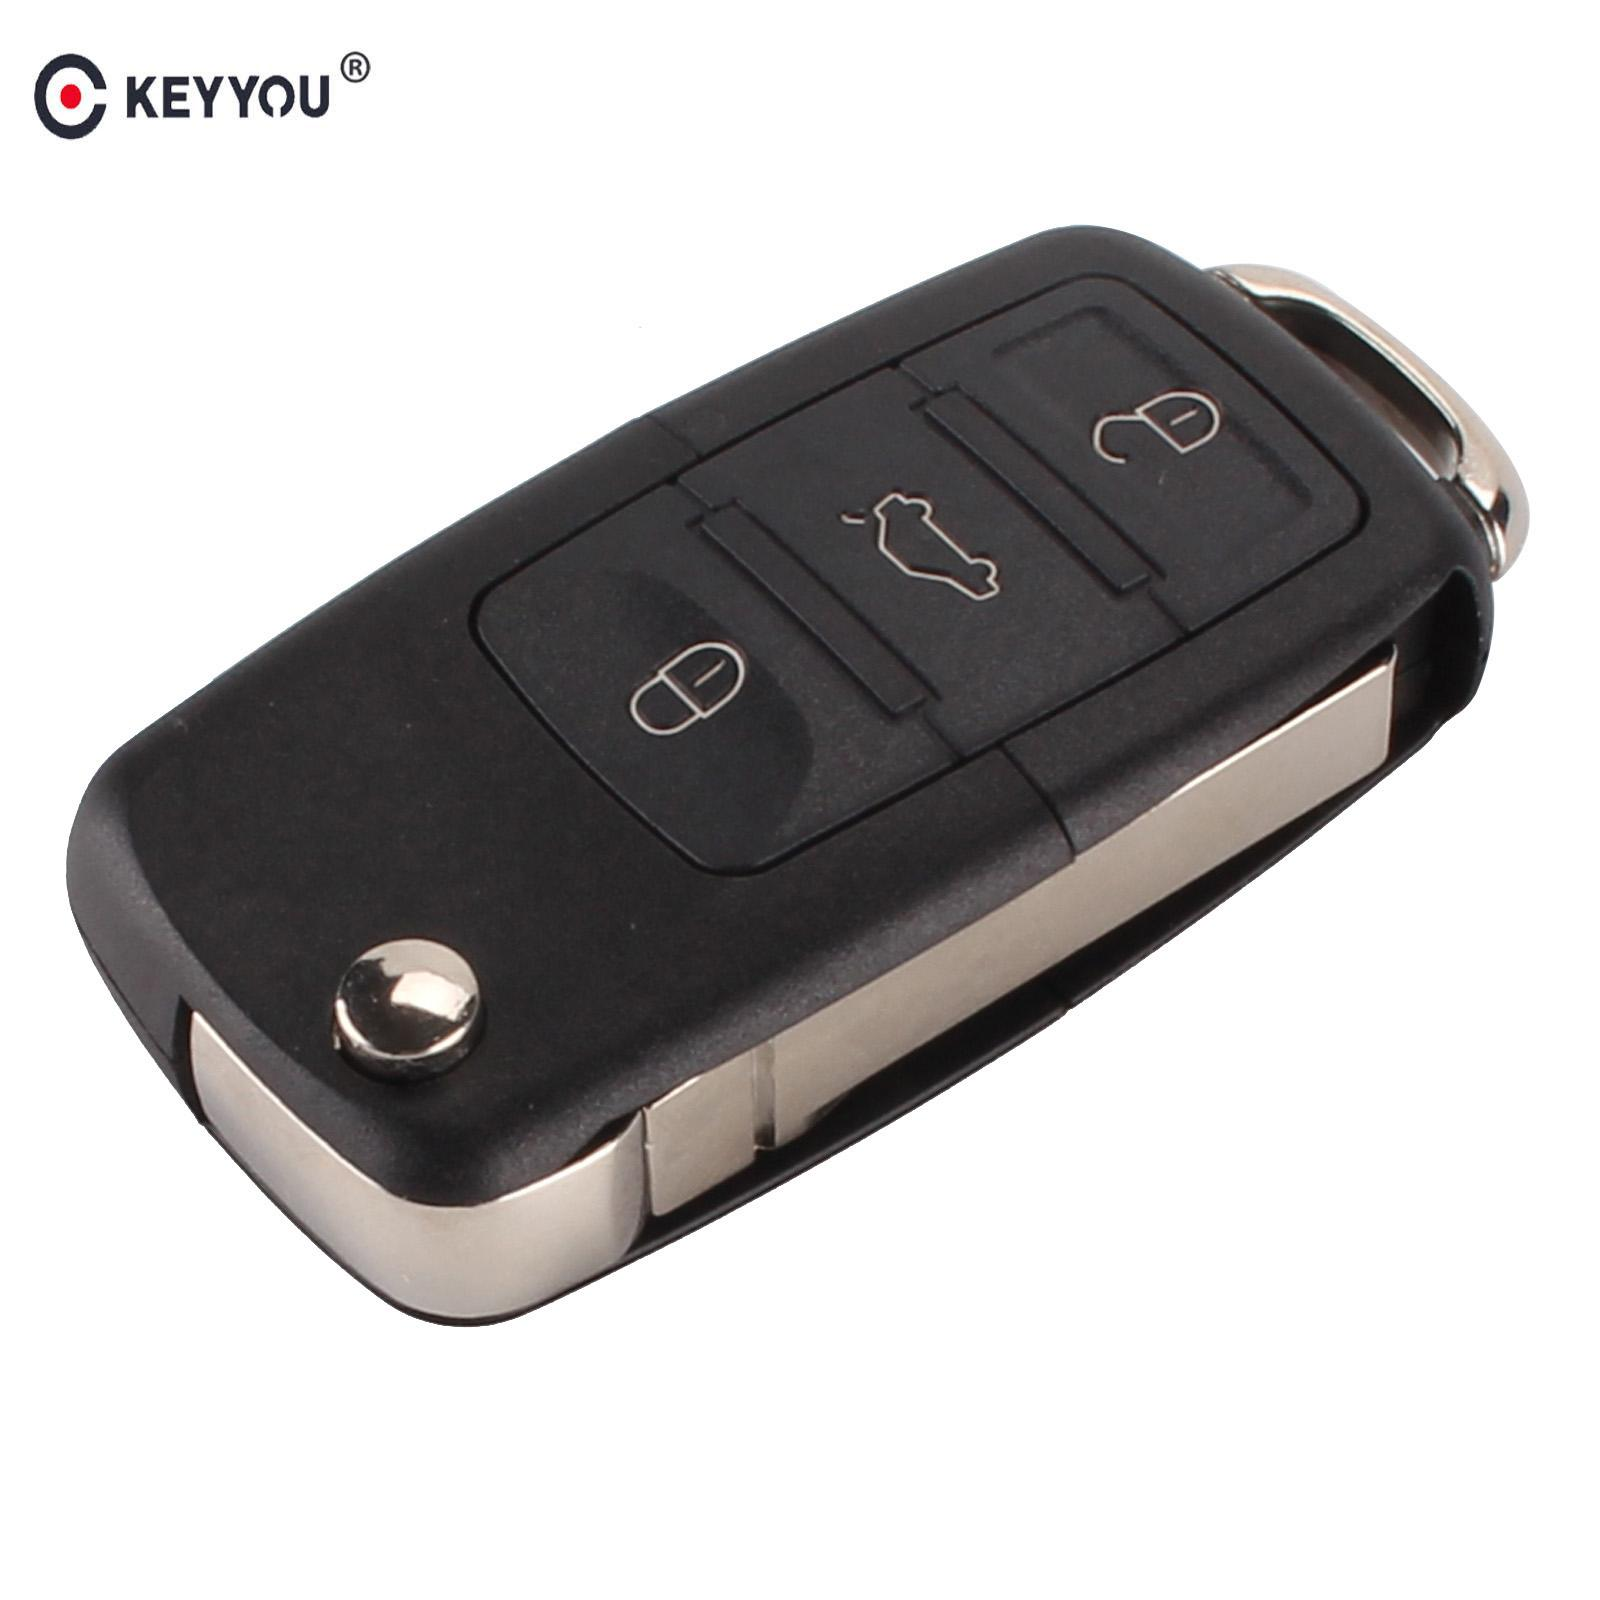 3 button Folding Car Remote Flip Key Shell Case Fob For VW Passat Polo Golf Touran Bora Ibiza Leon Octavia Fabia